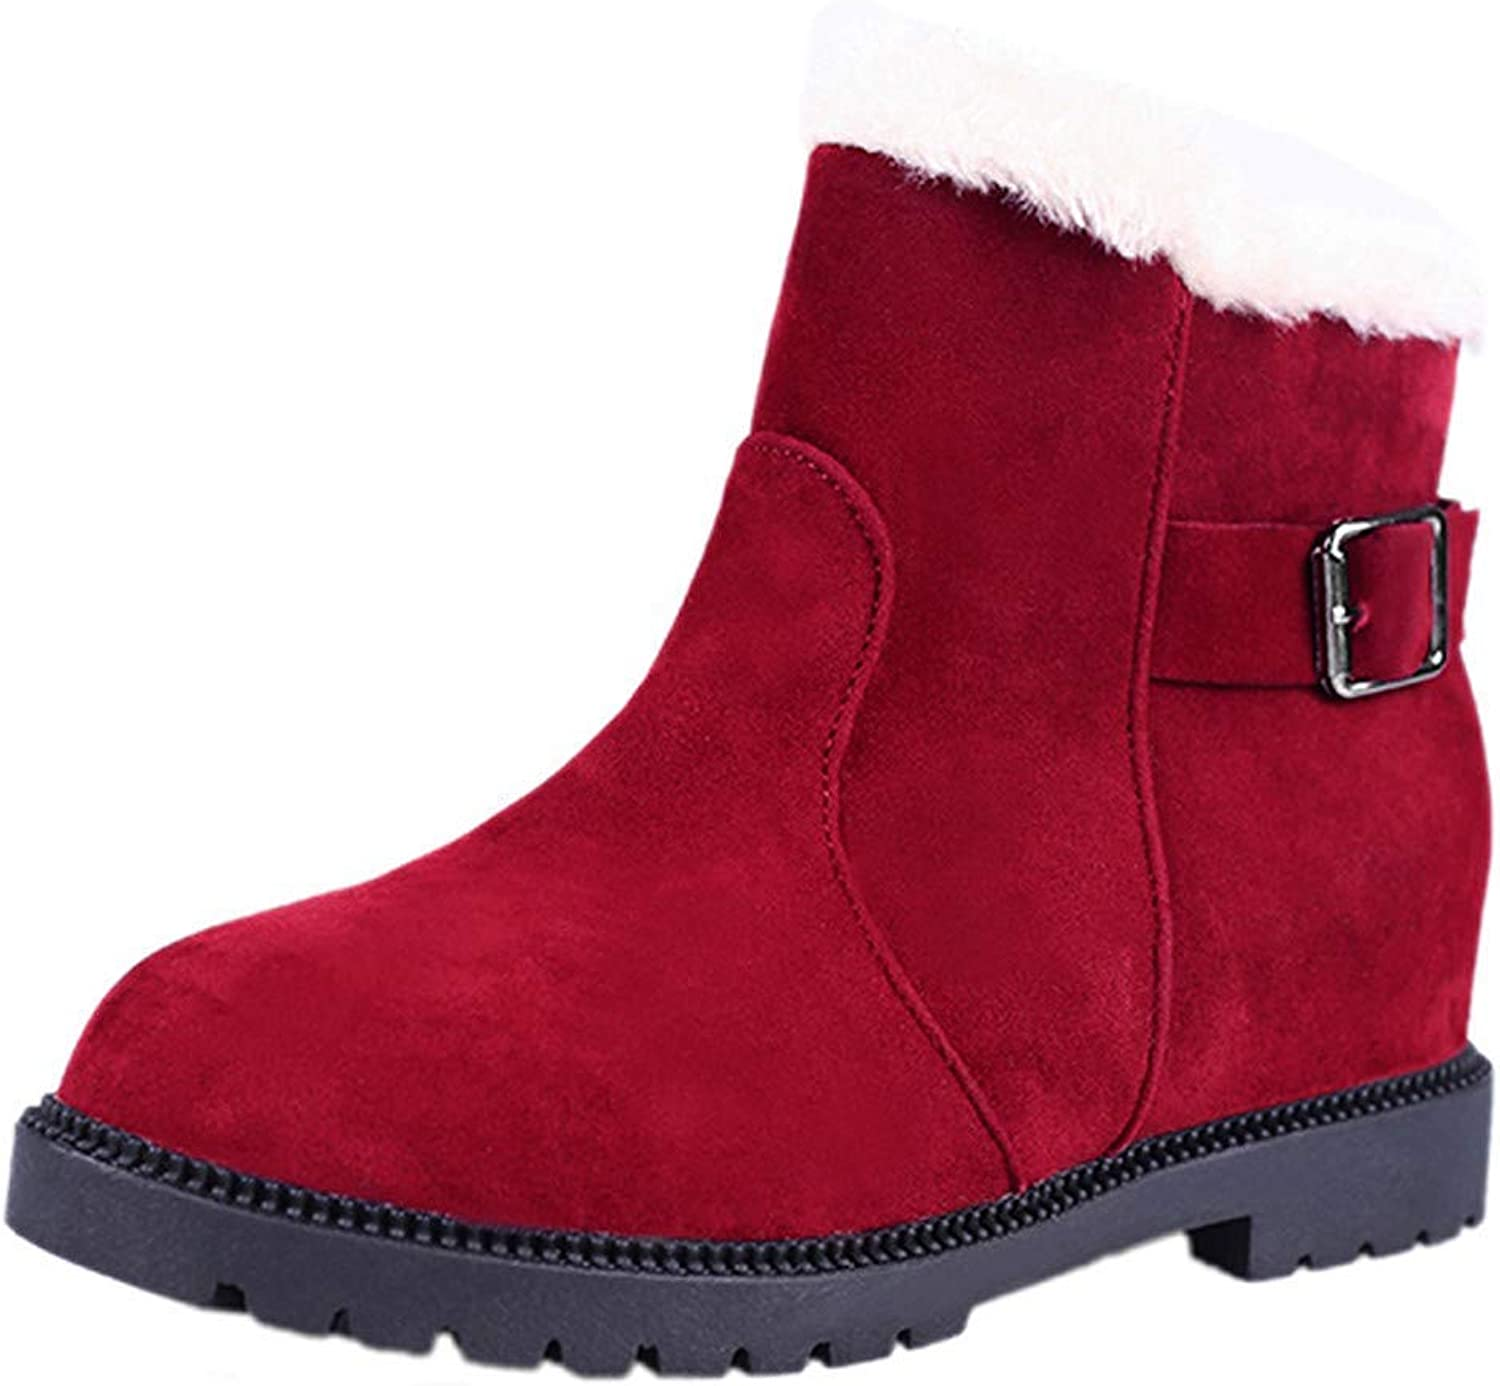 JaHGDU Women Flat shoes Snow Boots Suede Buckle Boots Keep Warm shoes Round Toe Cosy Wild Tight Casual Super Elegant Leisure Quality for Womens